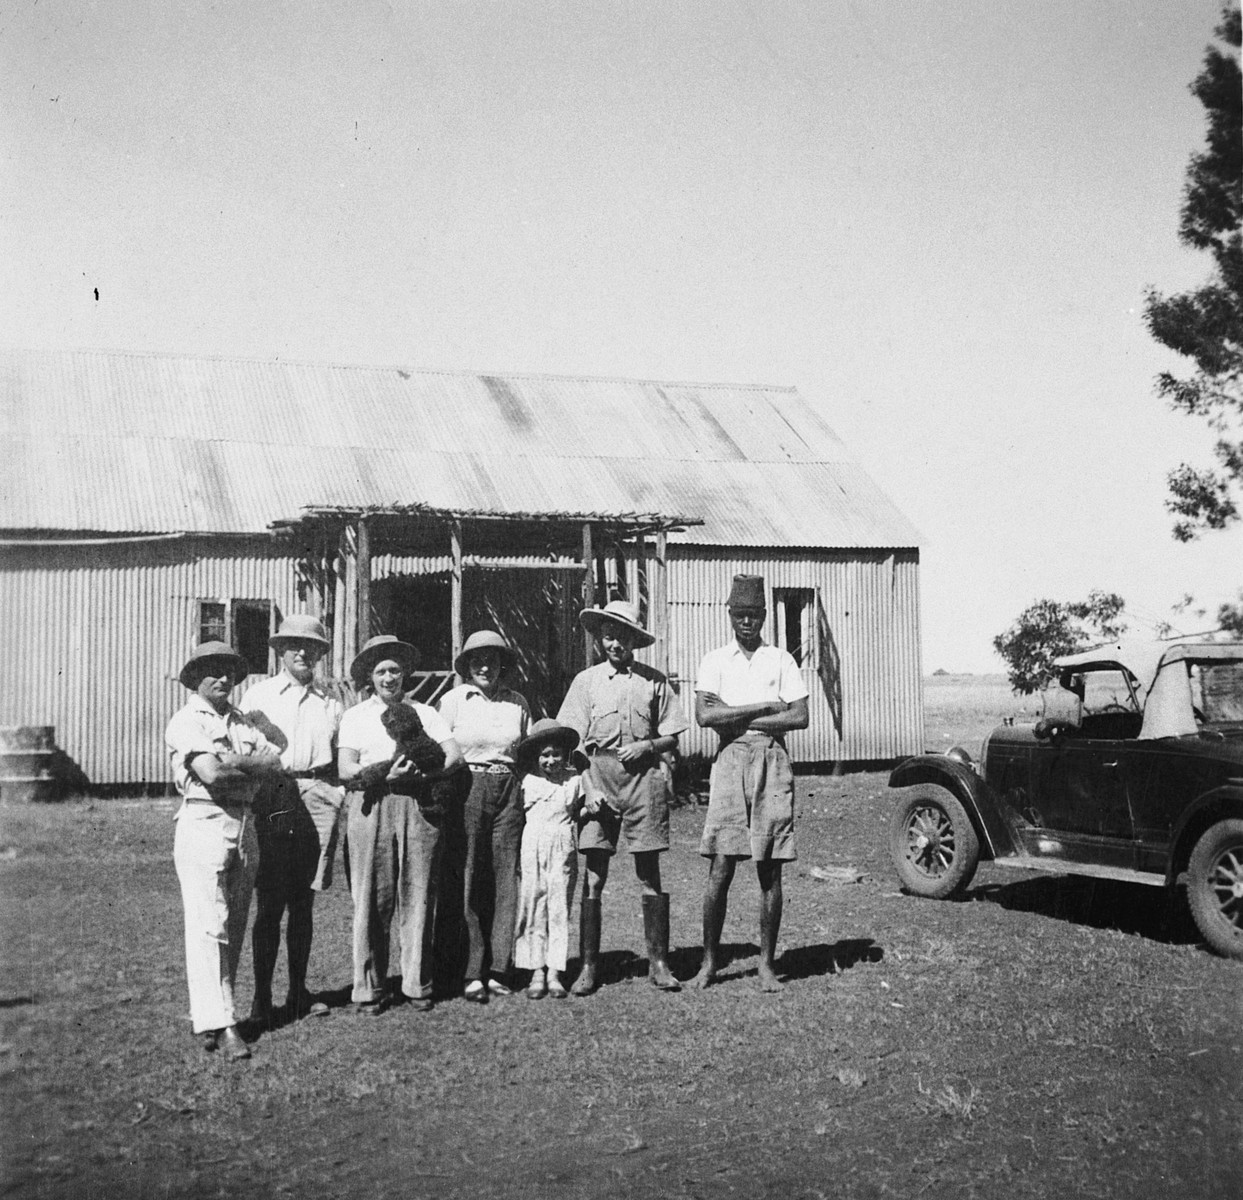 Members of a Jewish refugee family pose with an African assistant on their farm in Kenya.  Pictured are members of the Zweig family.  Stefanie Zweig is third from the right.